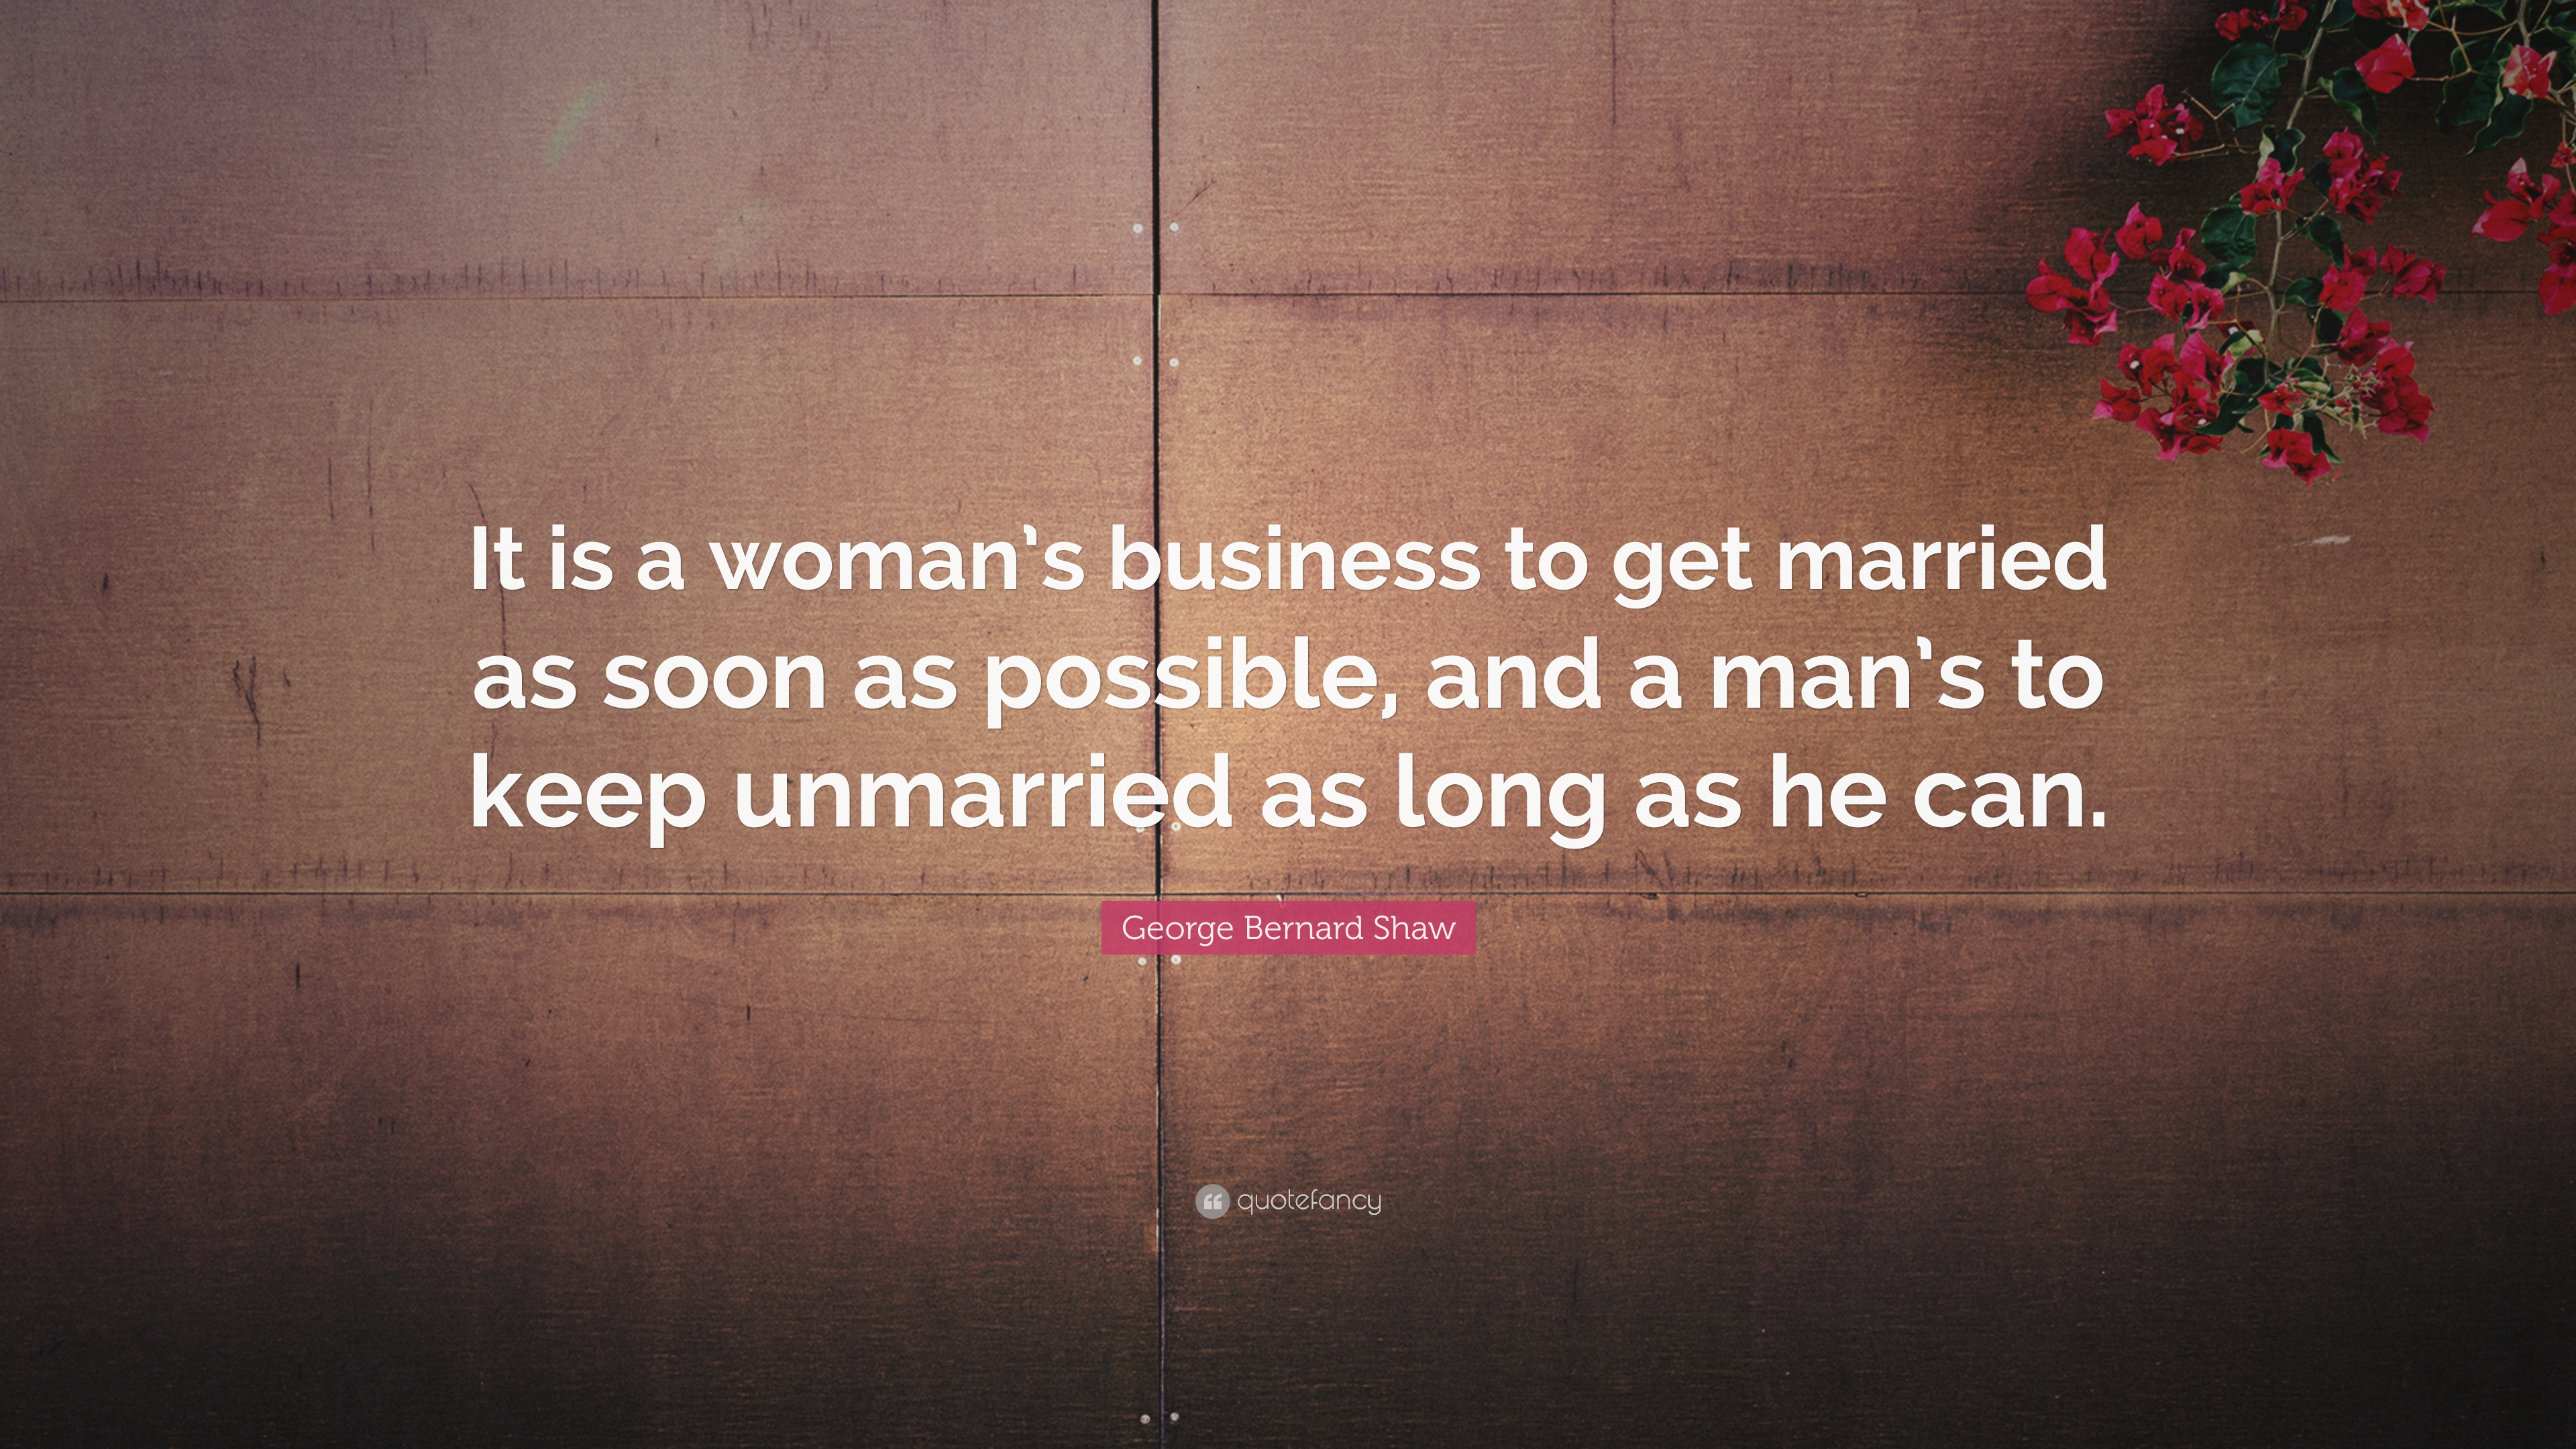 George Bernard Shaw Quote It Is A Woman S Business To Get Married As Soon As Possible And A Man S To Keep Unmarried As Long As He Can 7 Wallpapers Quotefancy